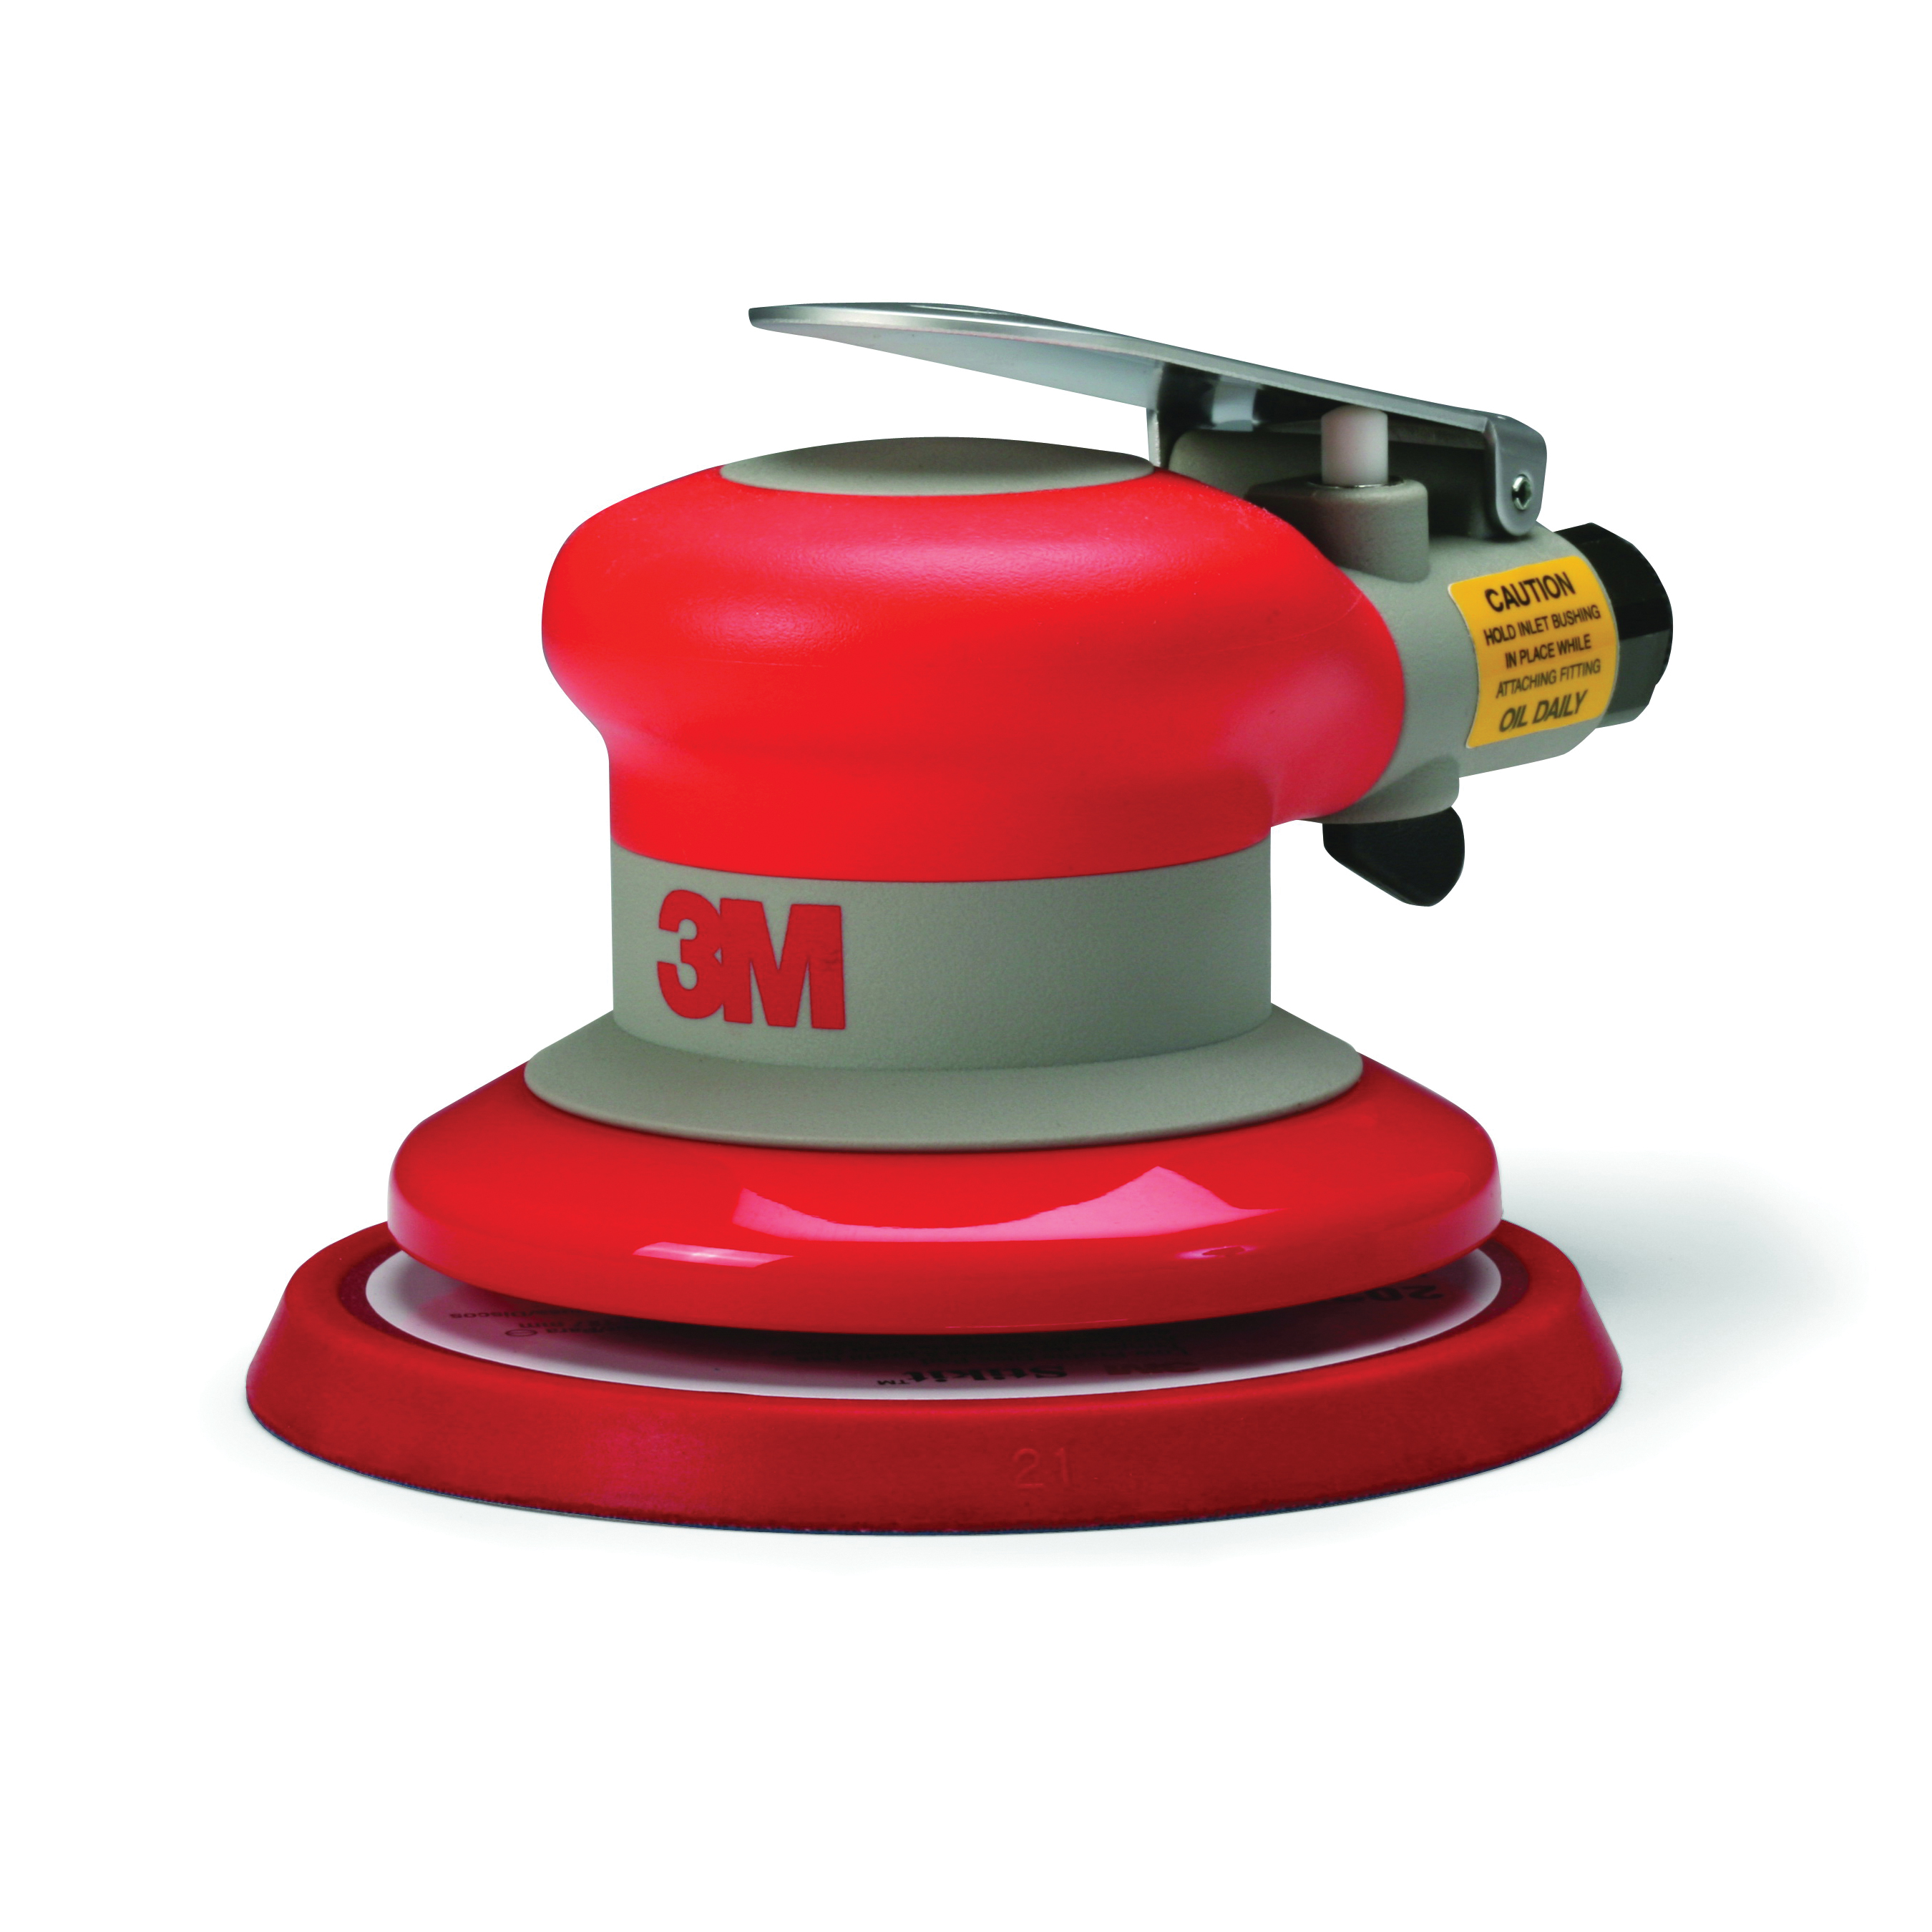 3M™ Elite® 051141-20317 Non-Vacuum Pneumatic Random Orbital Sander, 5 in Round Pad, 17 scfm Air Flow